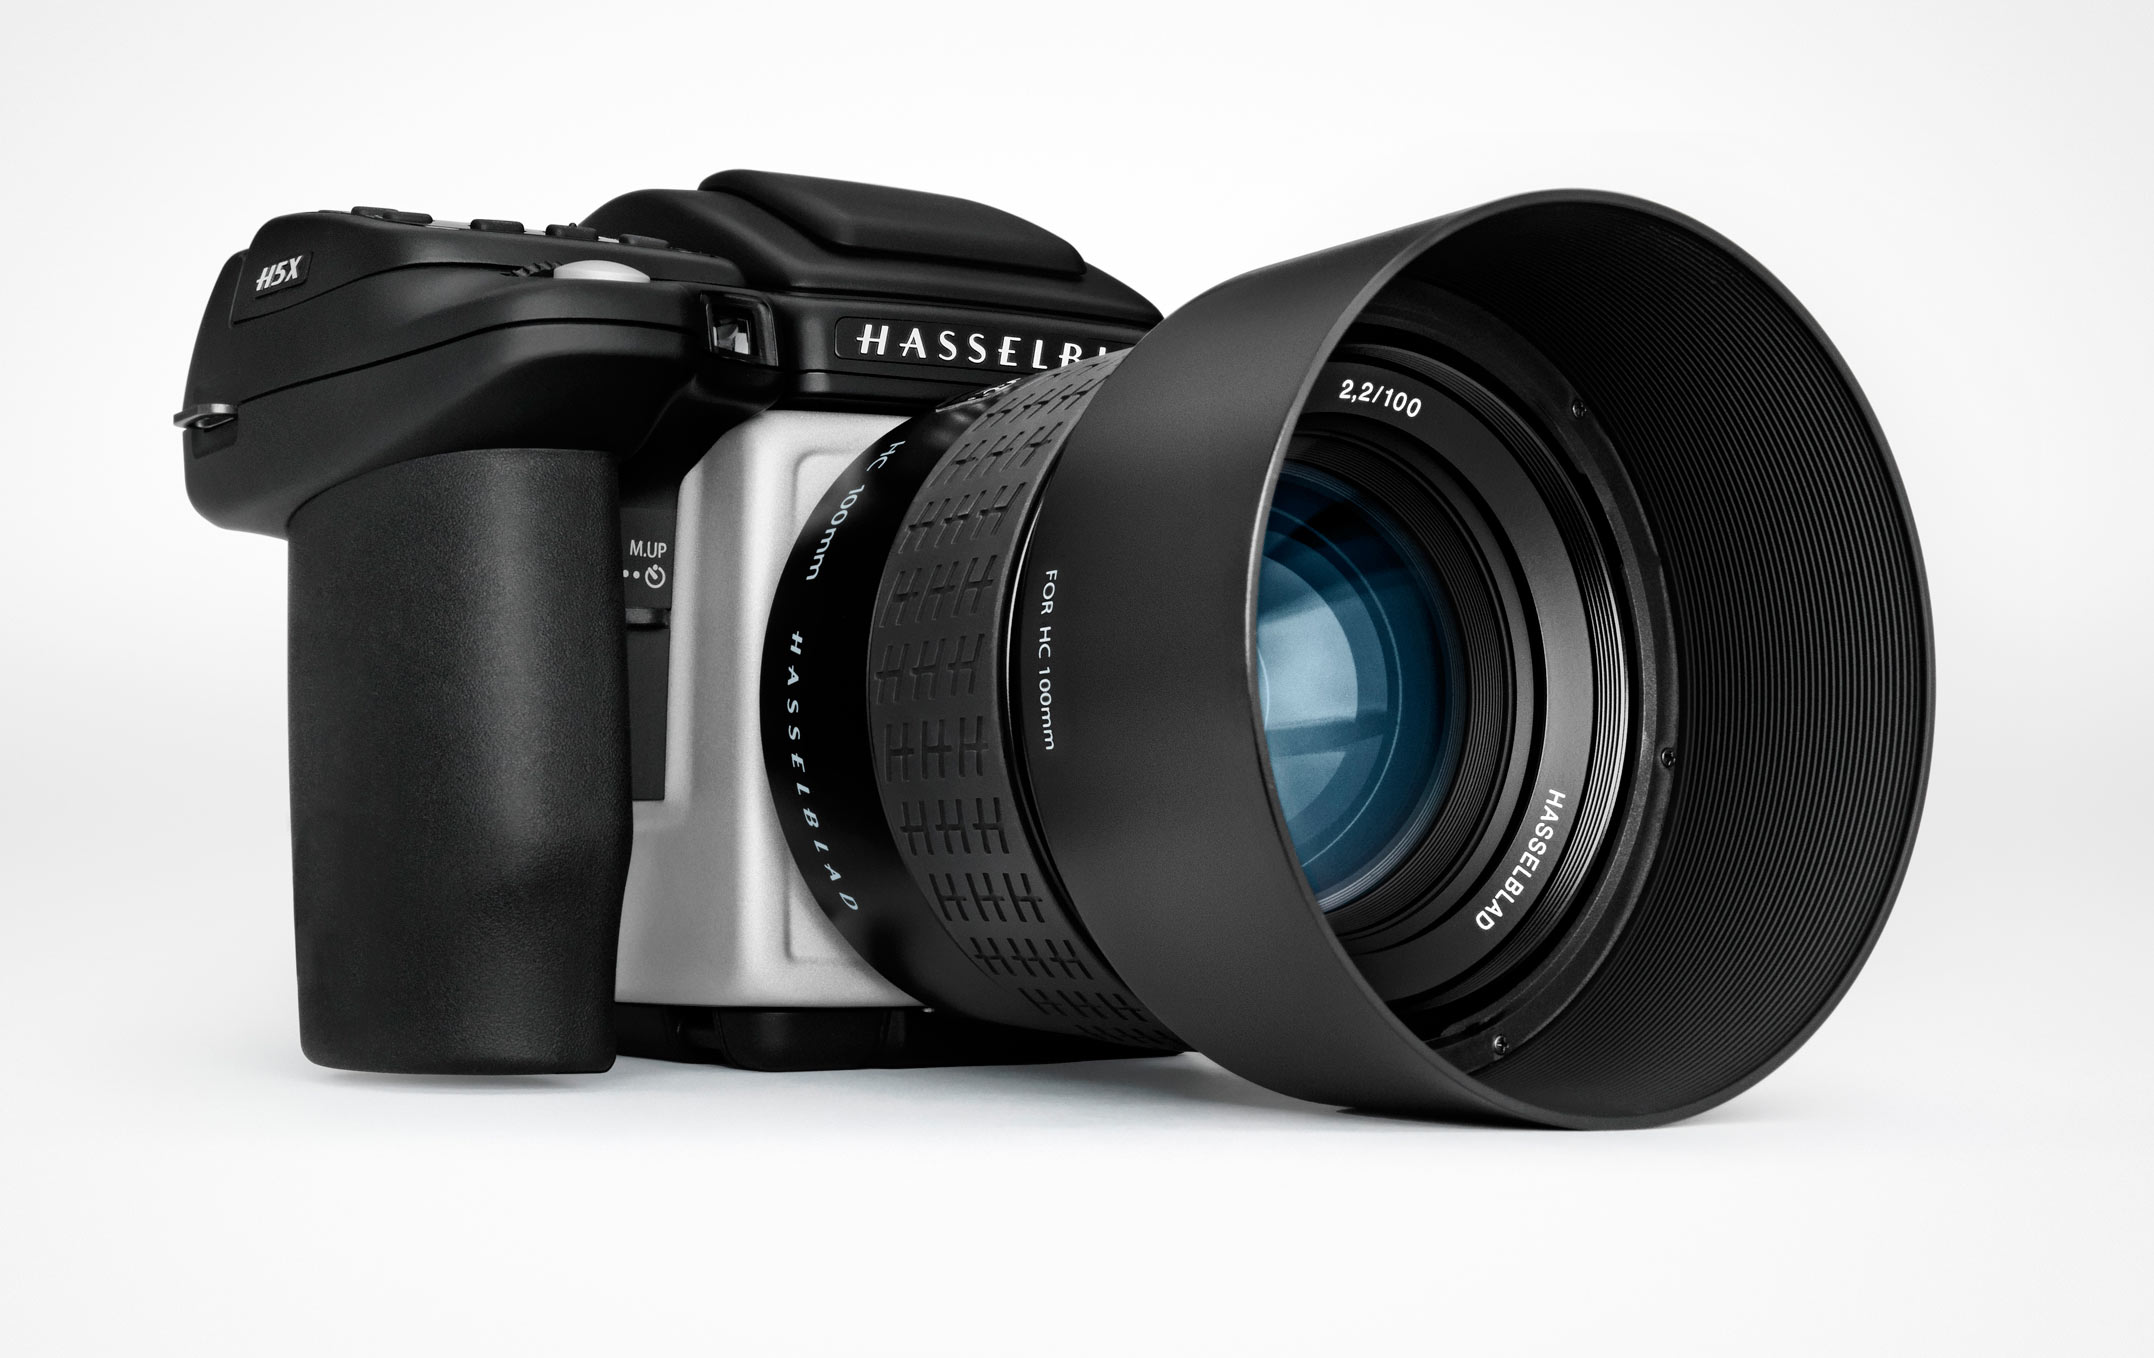 Hasselblad's H5X camera body brings newer focusing technology to medium-format photographers who prefer to use separate image-sensor backs.